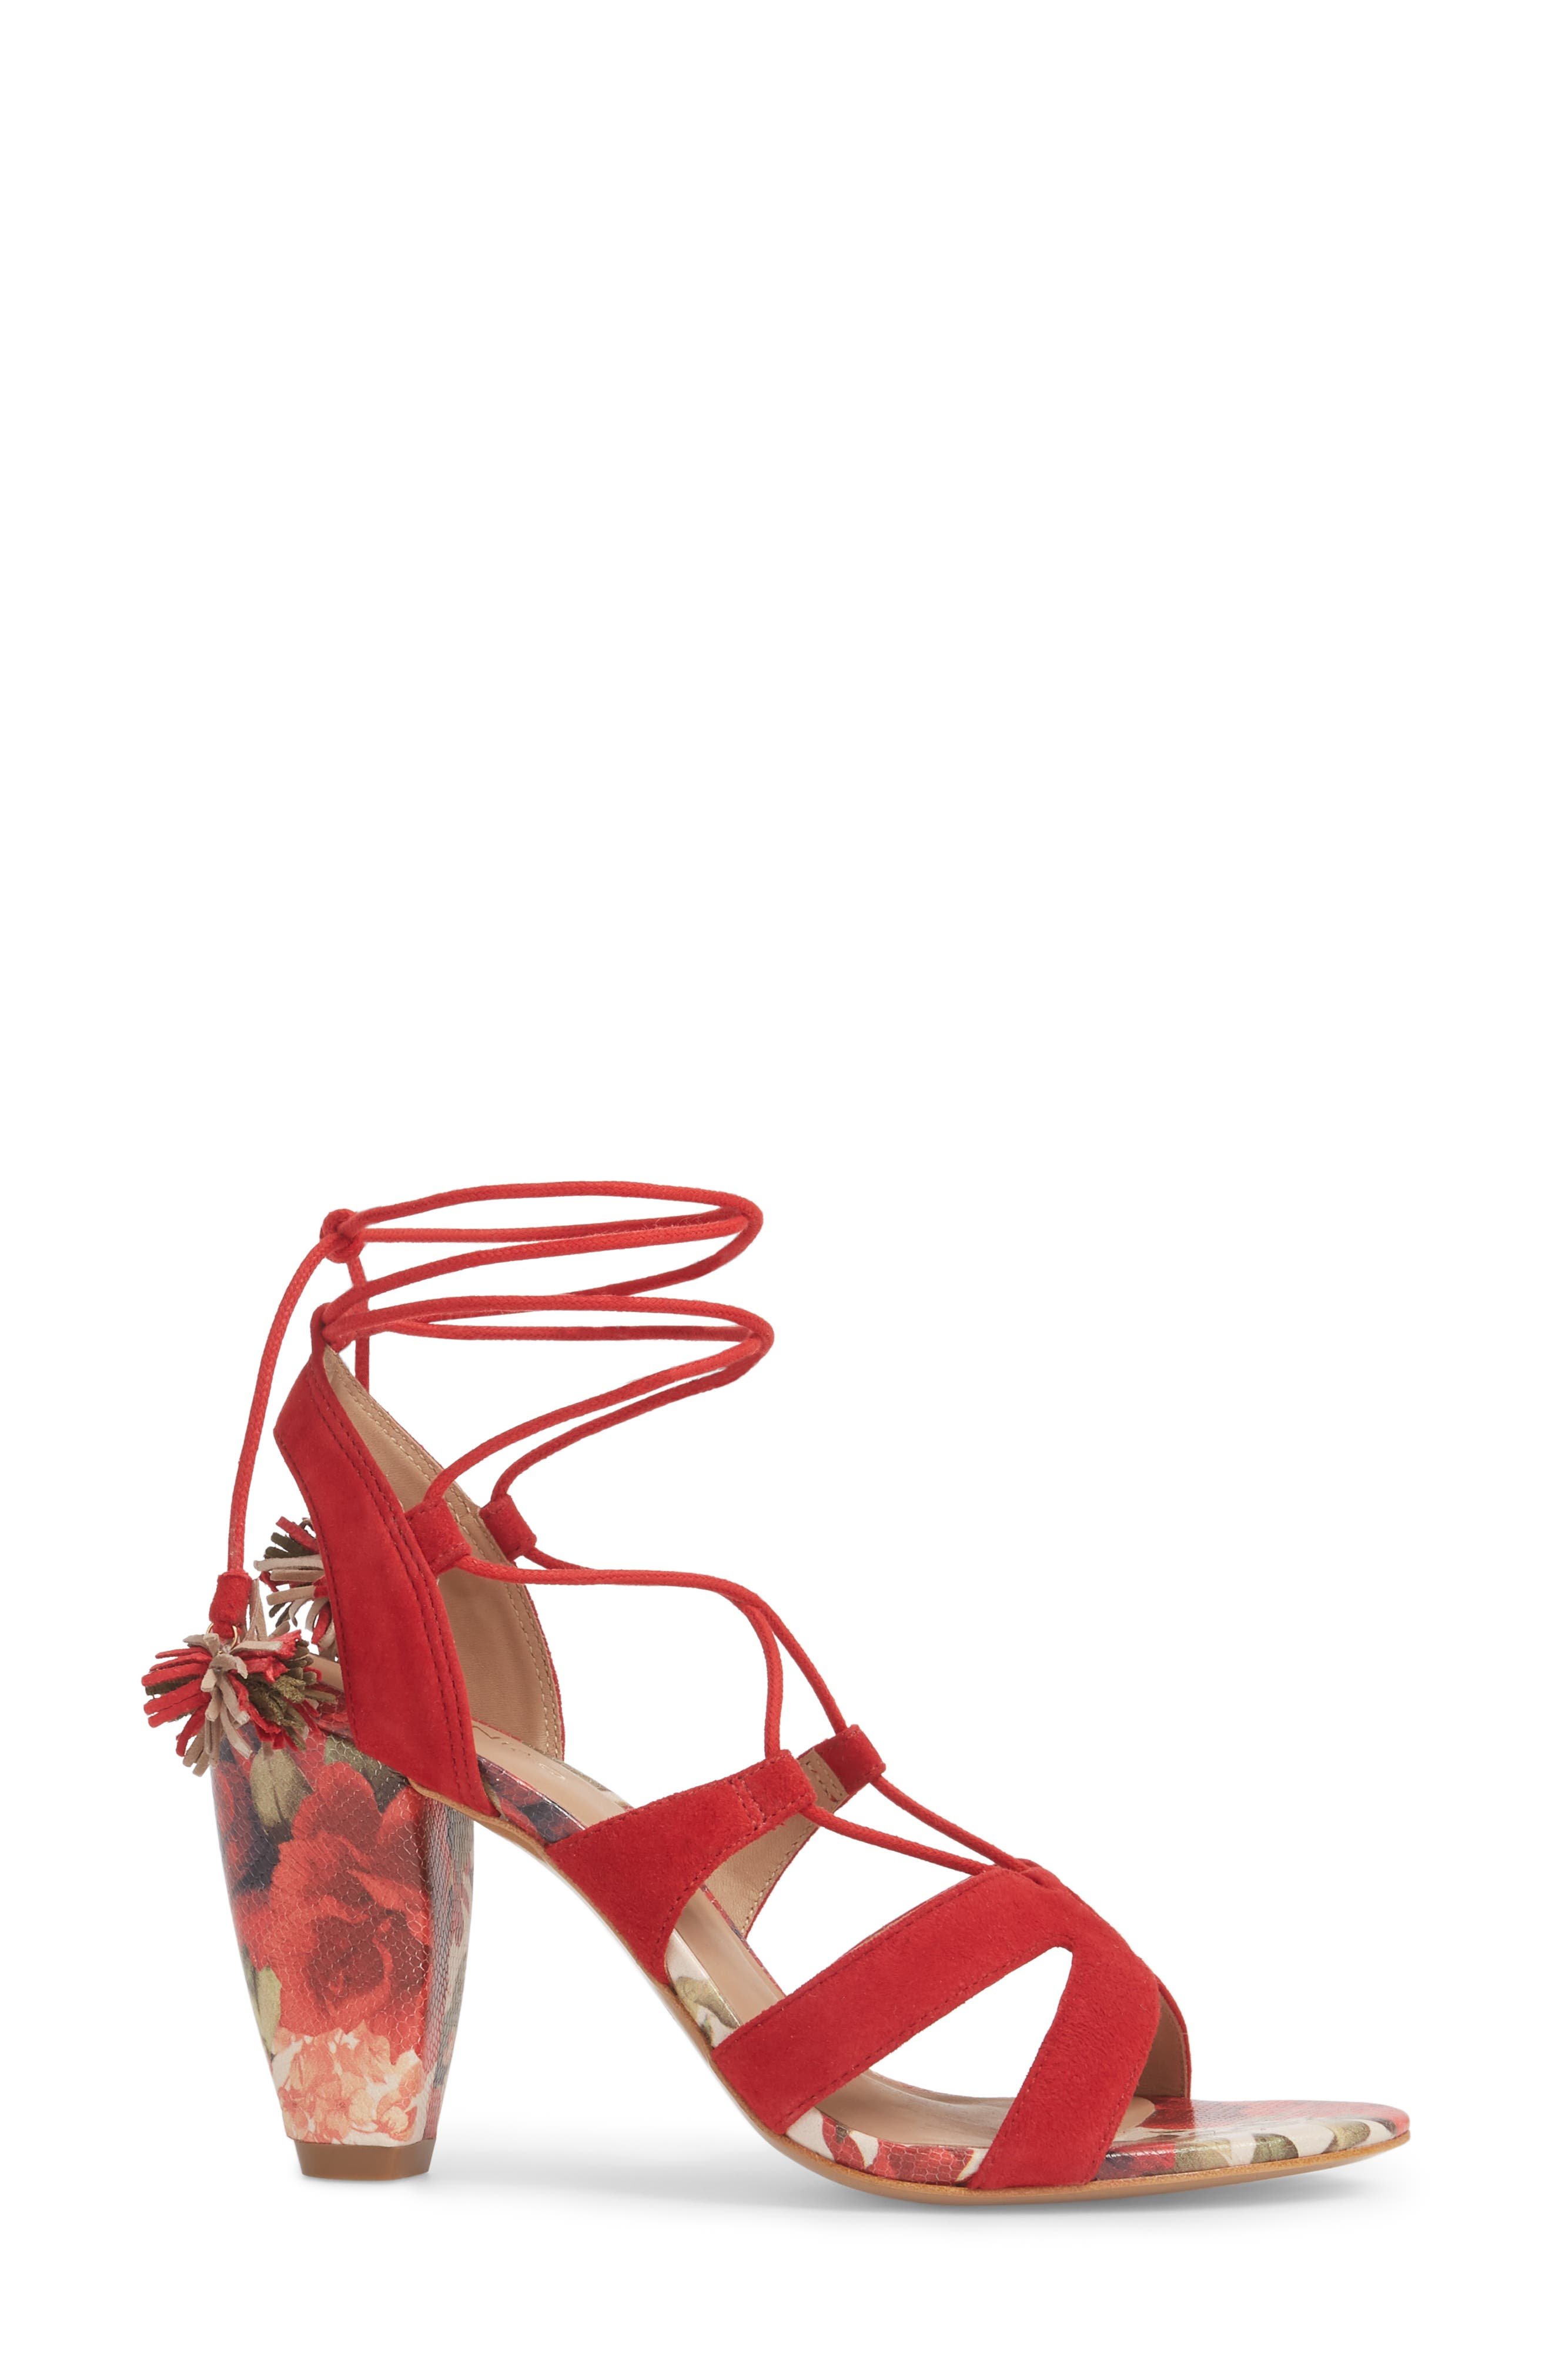 Maxine Sandal,                             Alternate thumbnail 3, color,                             Red Suede